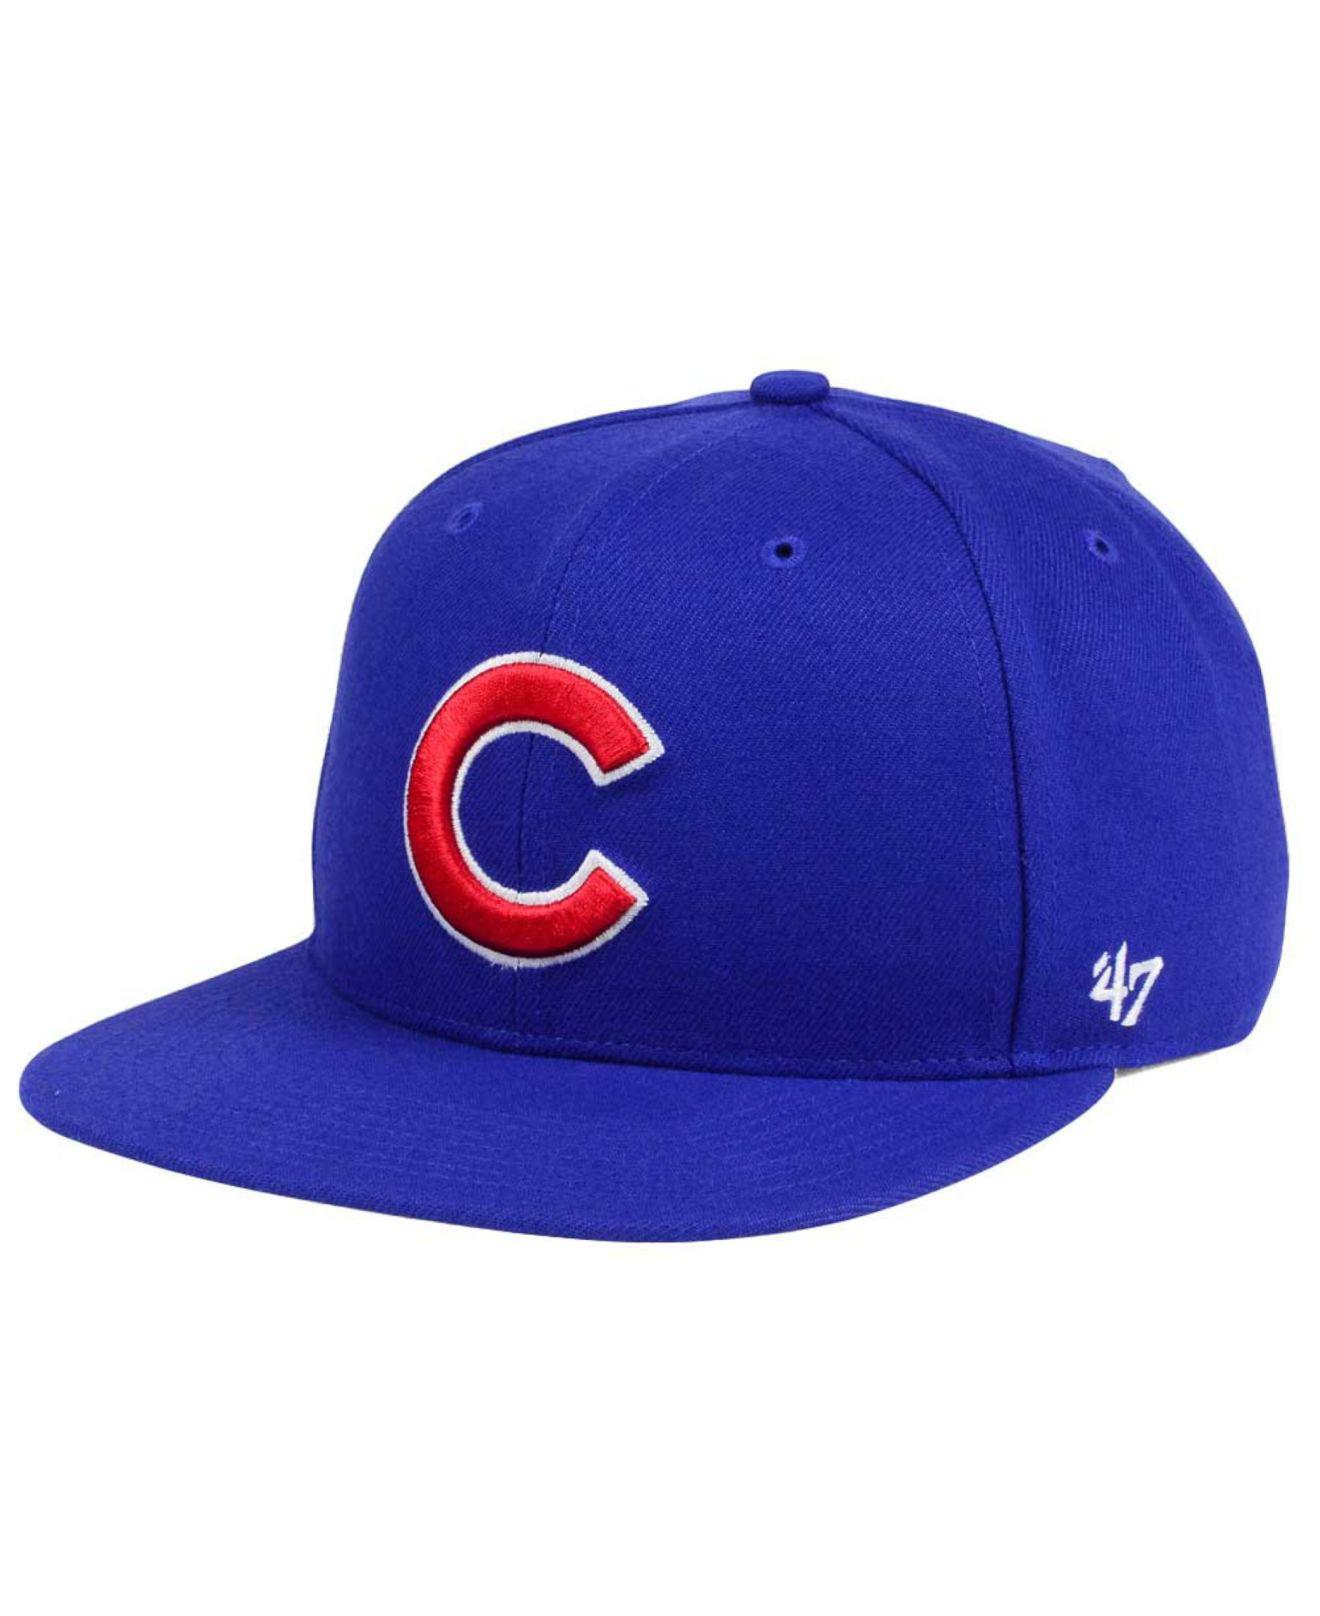 buy popular 97d10 97636 Lyst - 47 Brand Team Jackie Robinson Collection Cap in Blue for Men